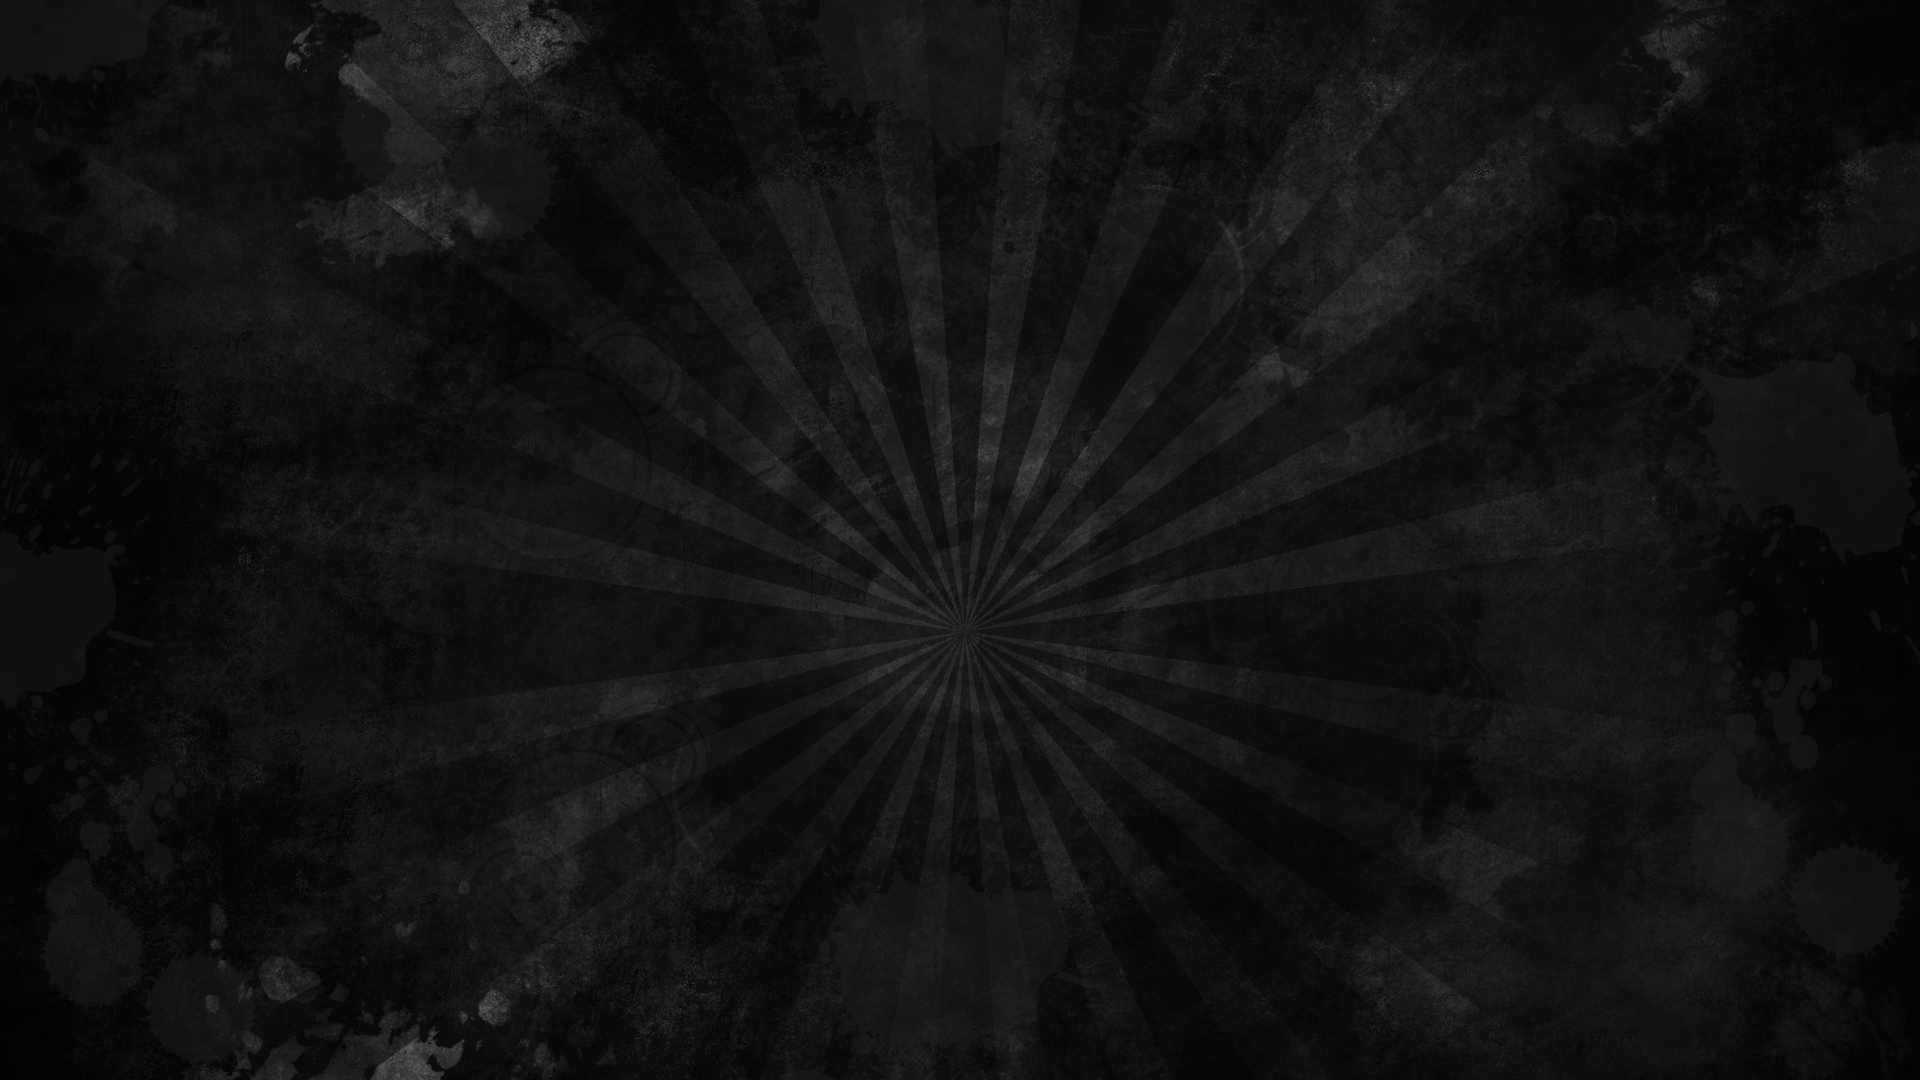 Black Grunge Wallpaper - WallpaperSafari